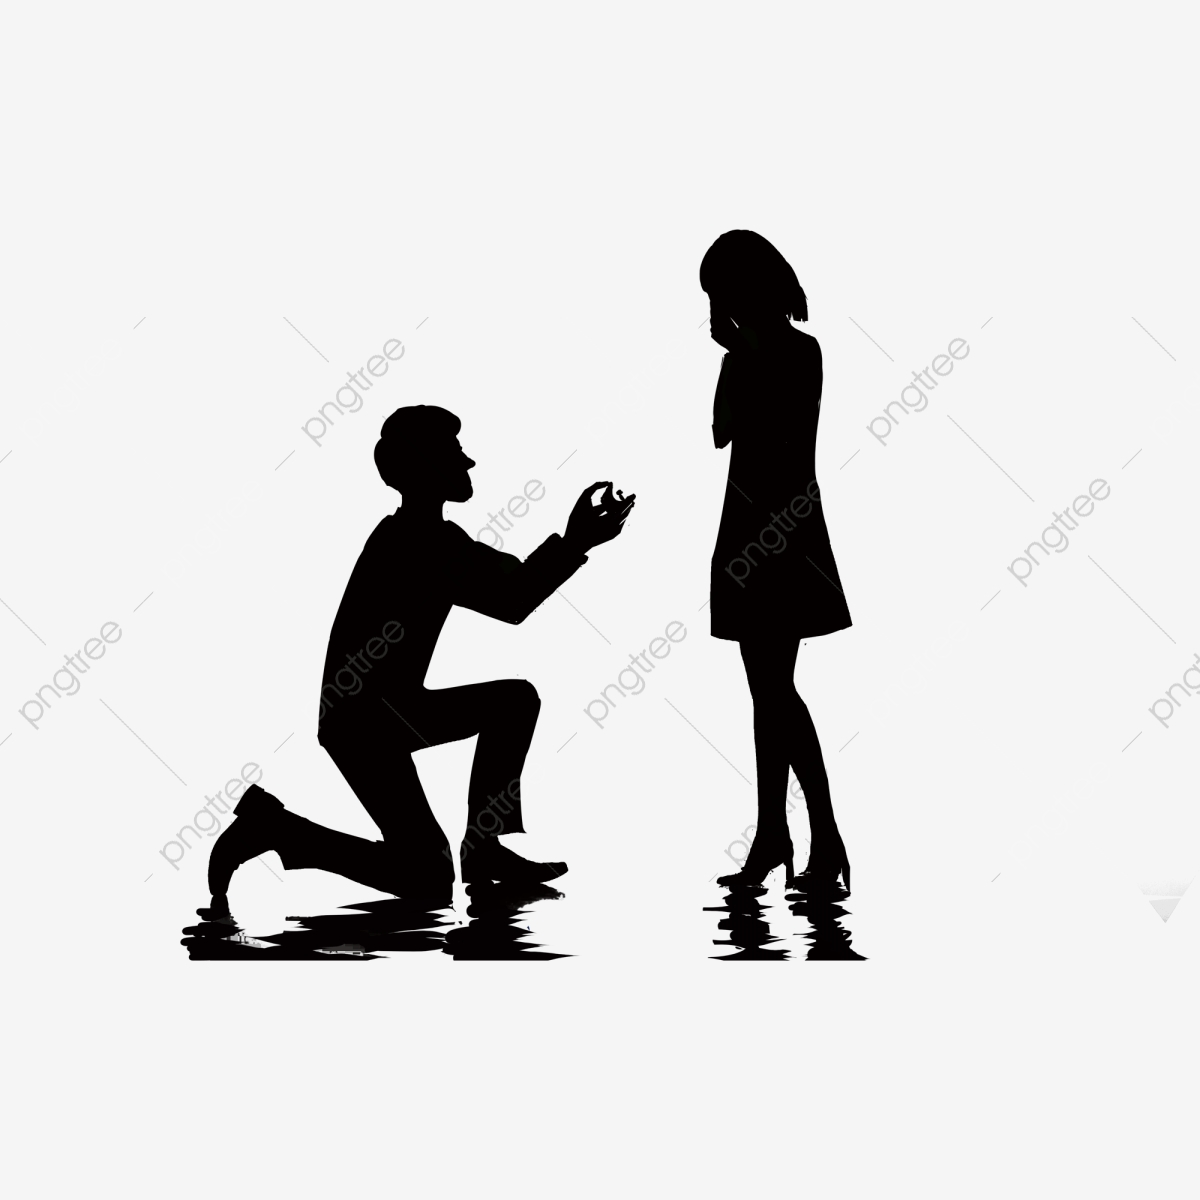 Boy Slyly Proposes To Girl Silhouette Cartoon Element, Boy.